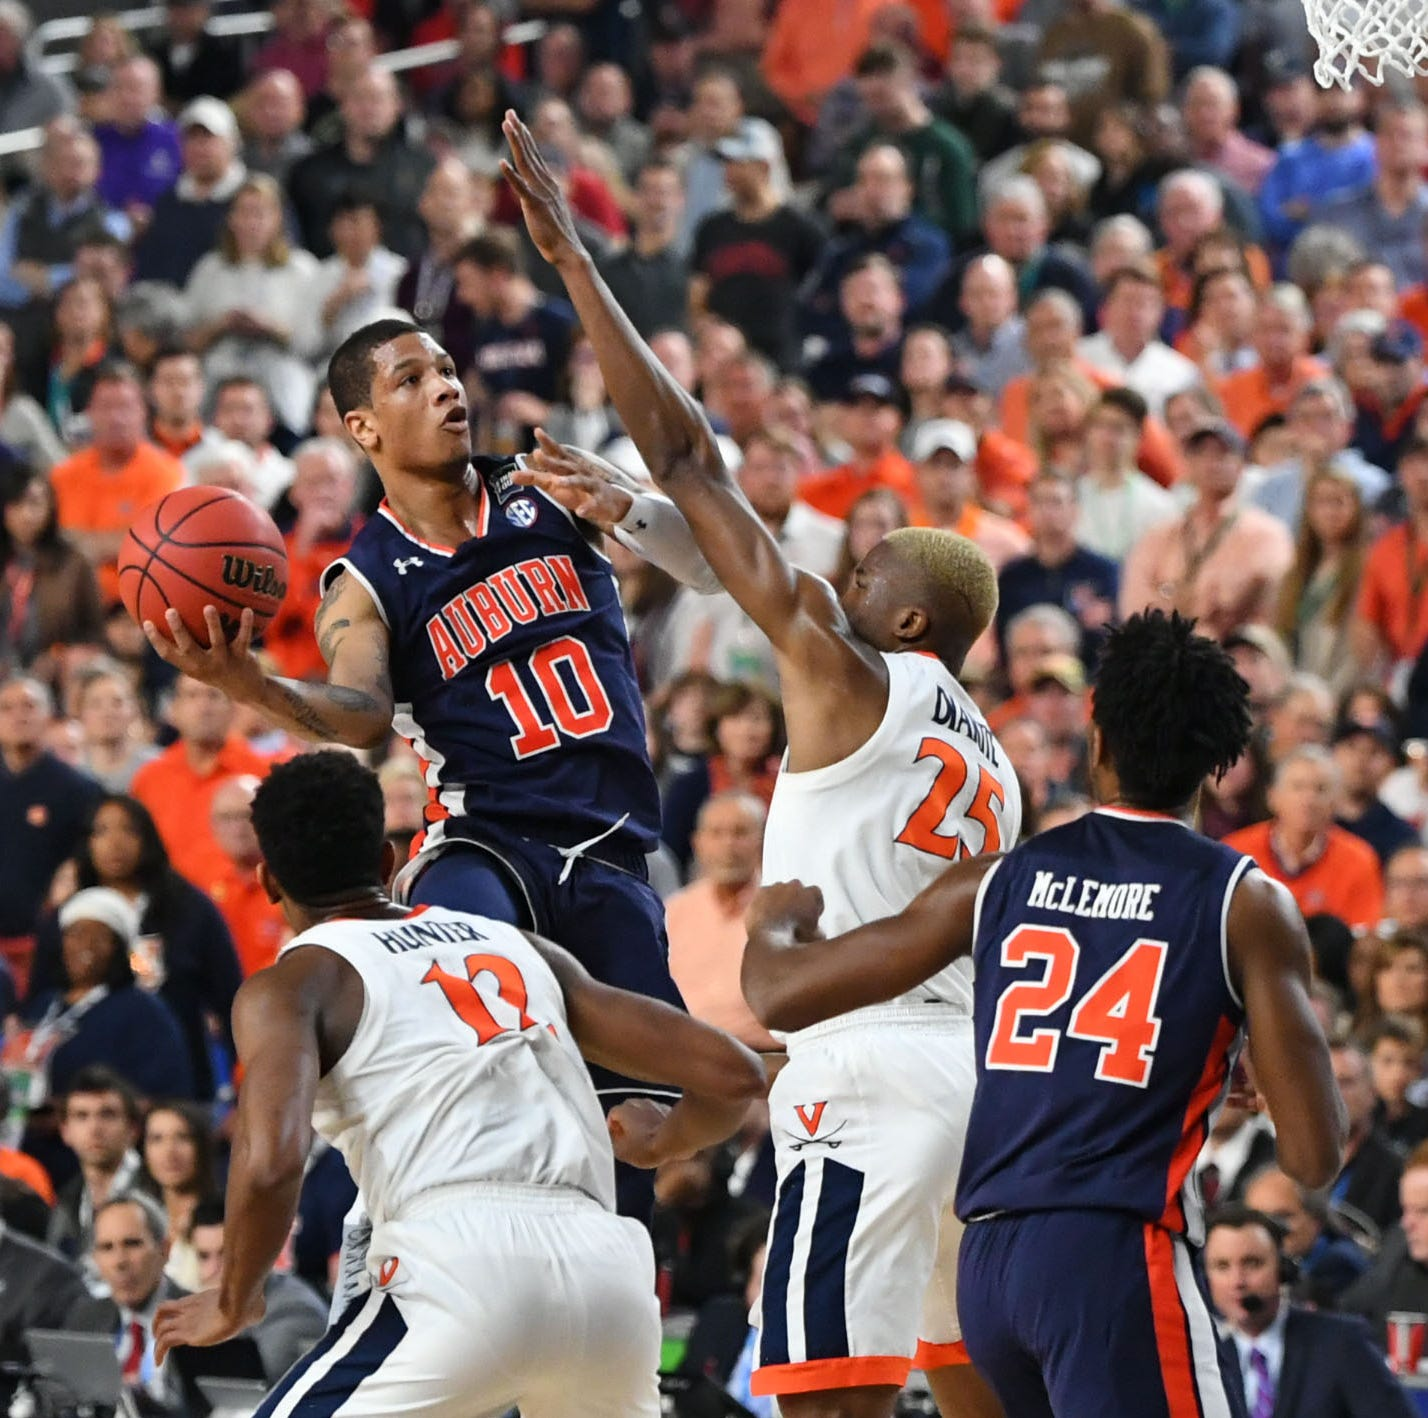 NCAA Final Four 2019: Auburn vs. Virginia men's basketball highlights, score